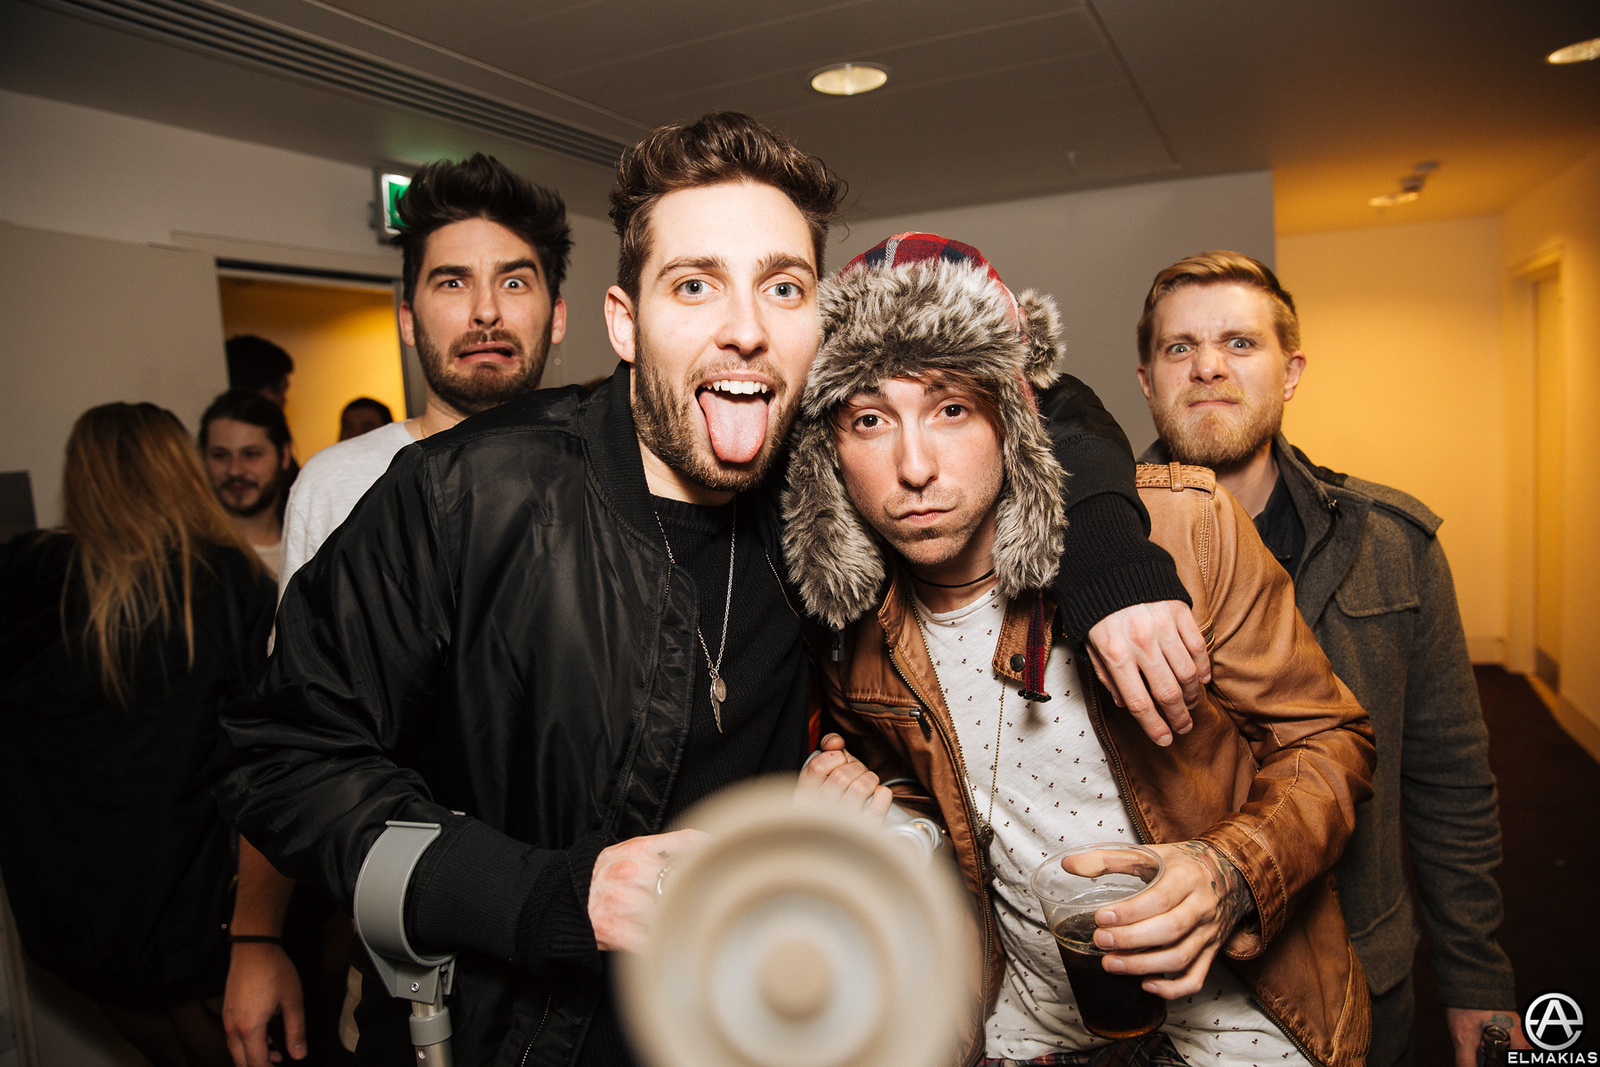 Josh of You Me At Six and Alex of All Time Low